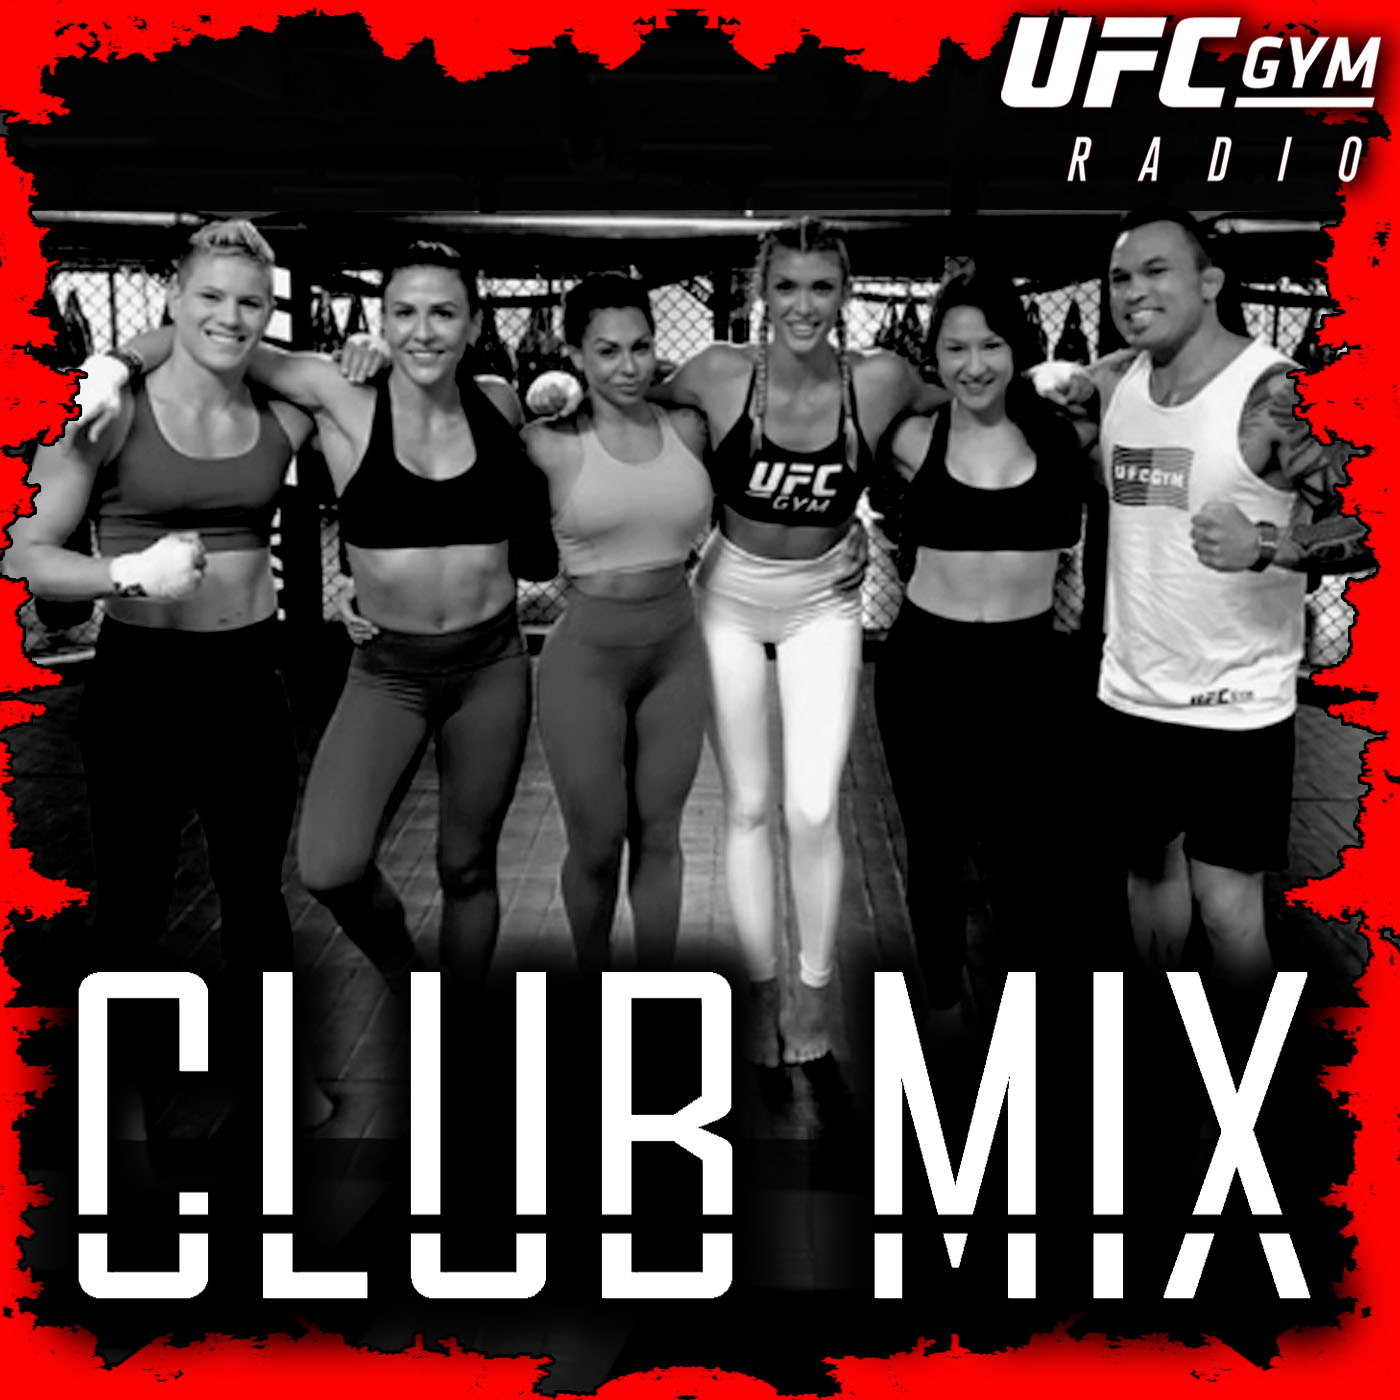 UFC GYM RADIO 415 - The Club Mix